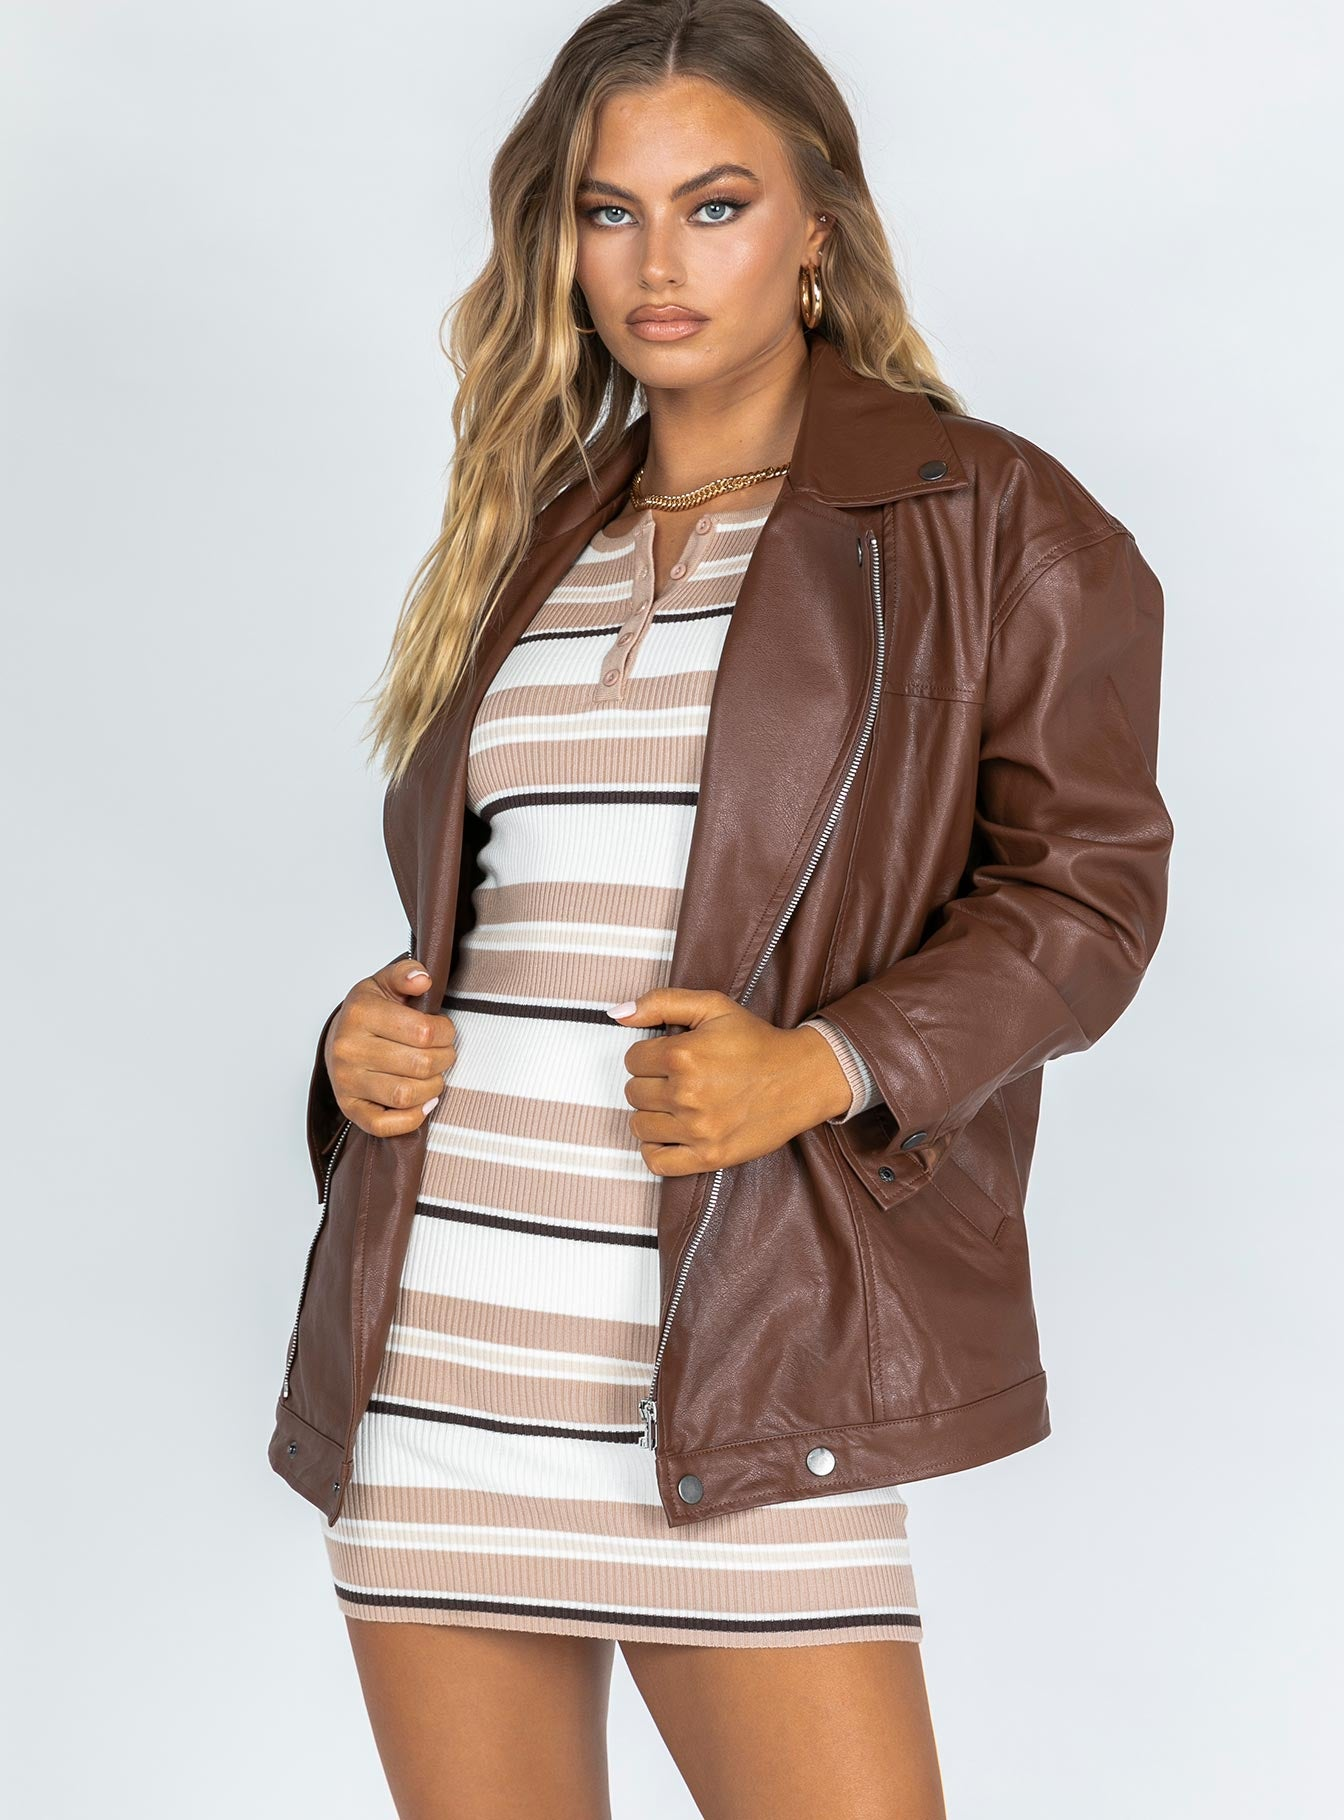 Next in Line Biker Jacket Brown